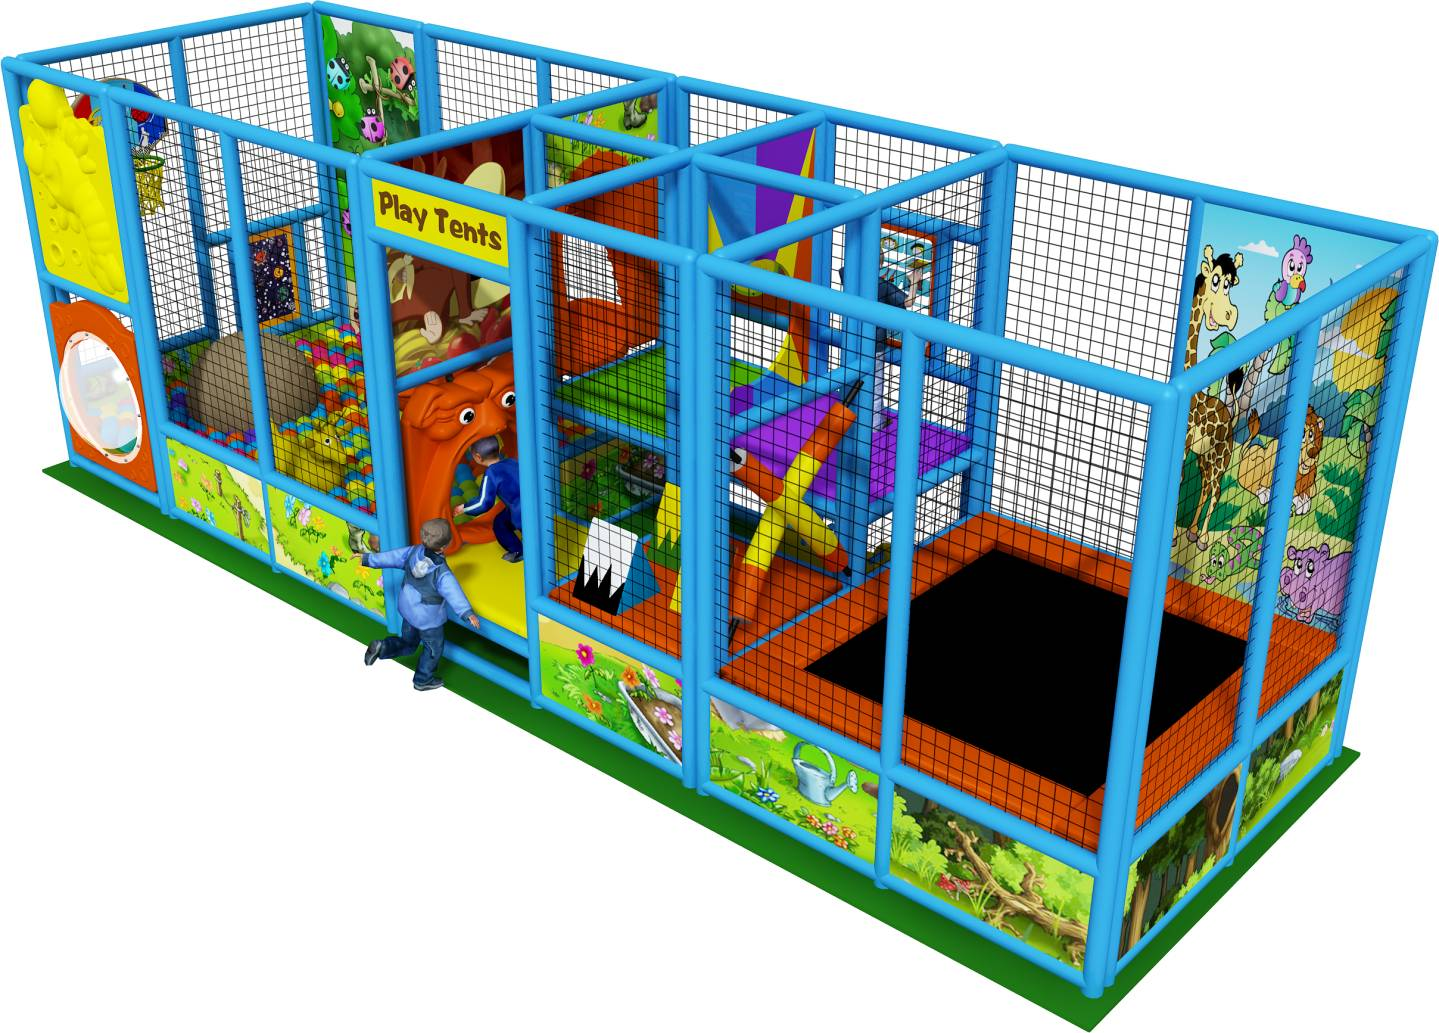 How to plan for children indoor playground business plan sample?